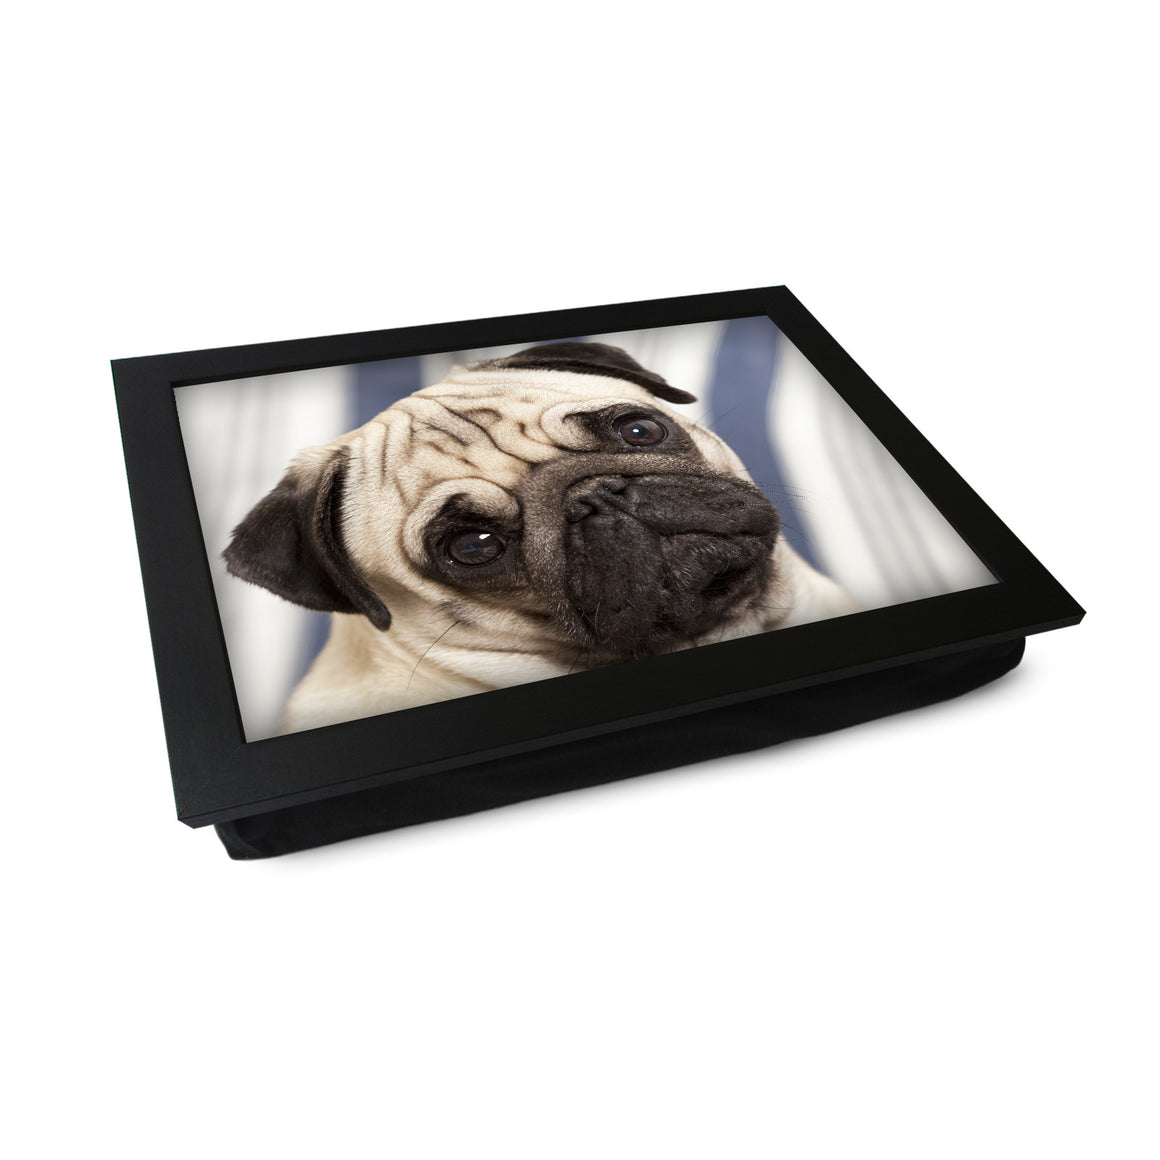 Pug Dog Lap Tray - L0147